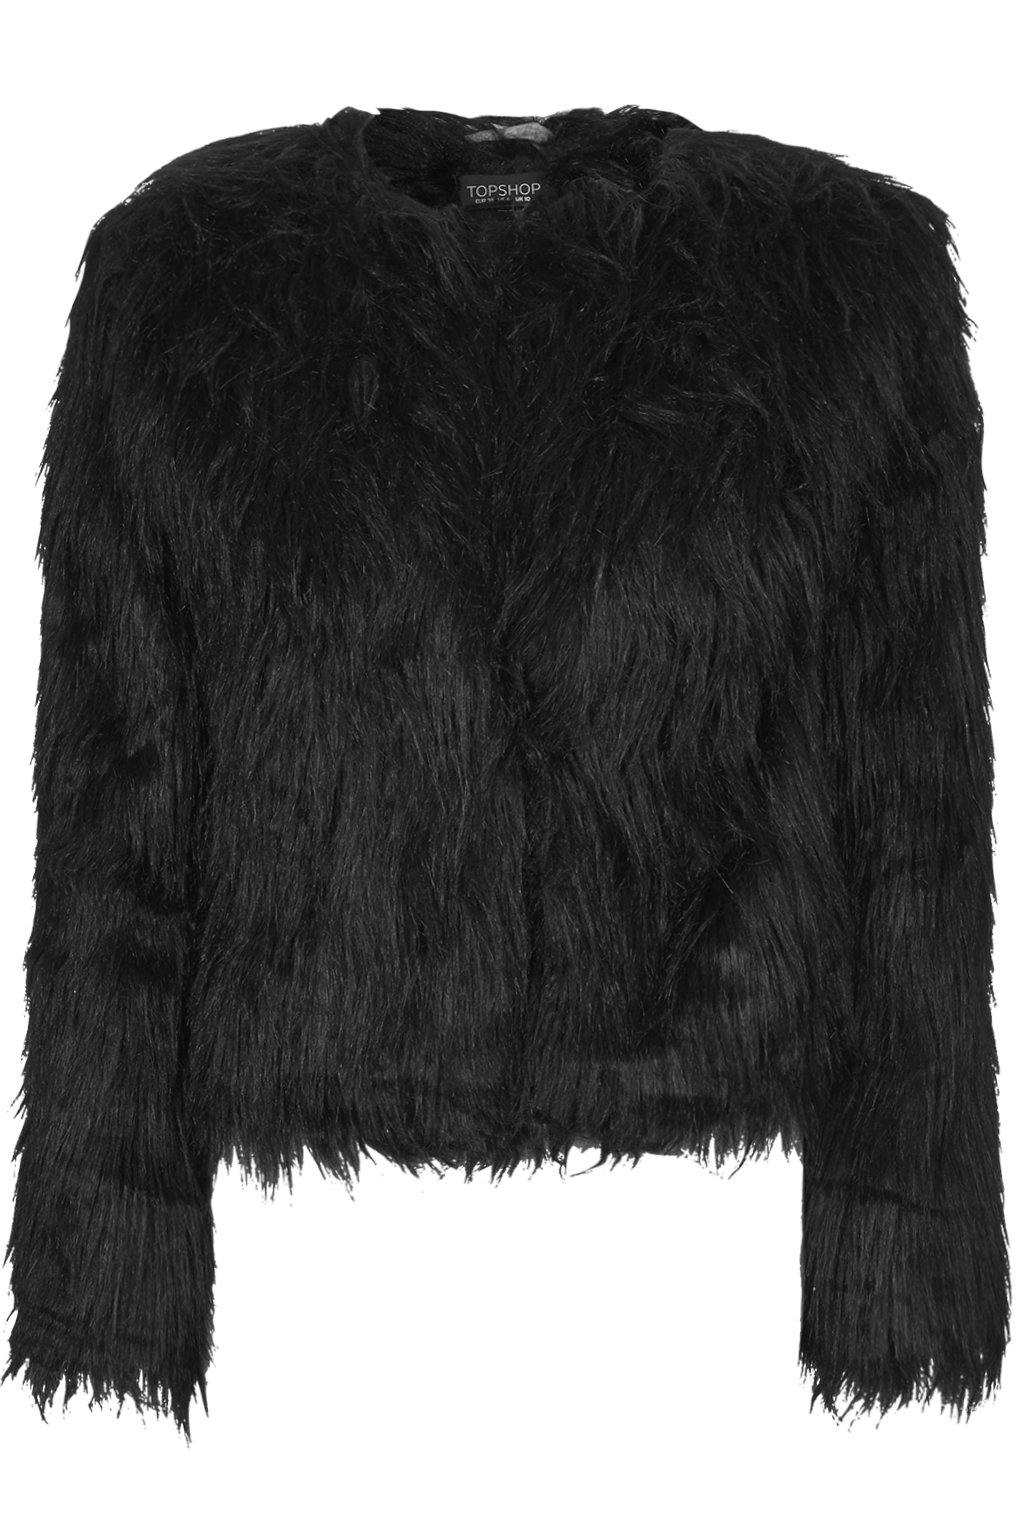 Faux shearling fur jacket